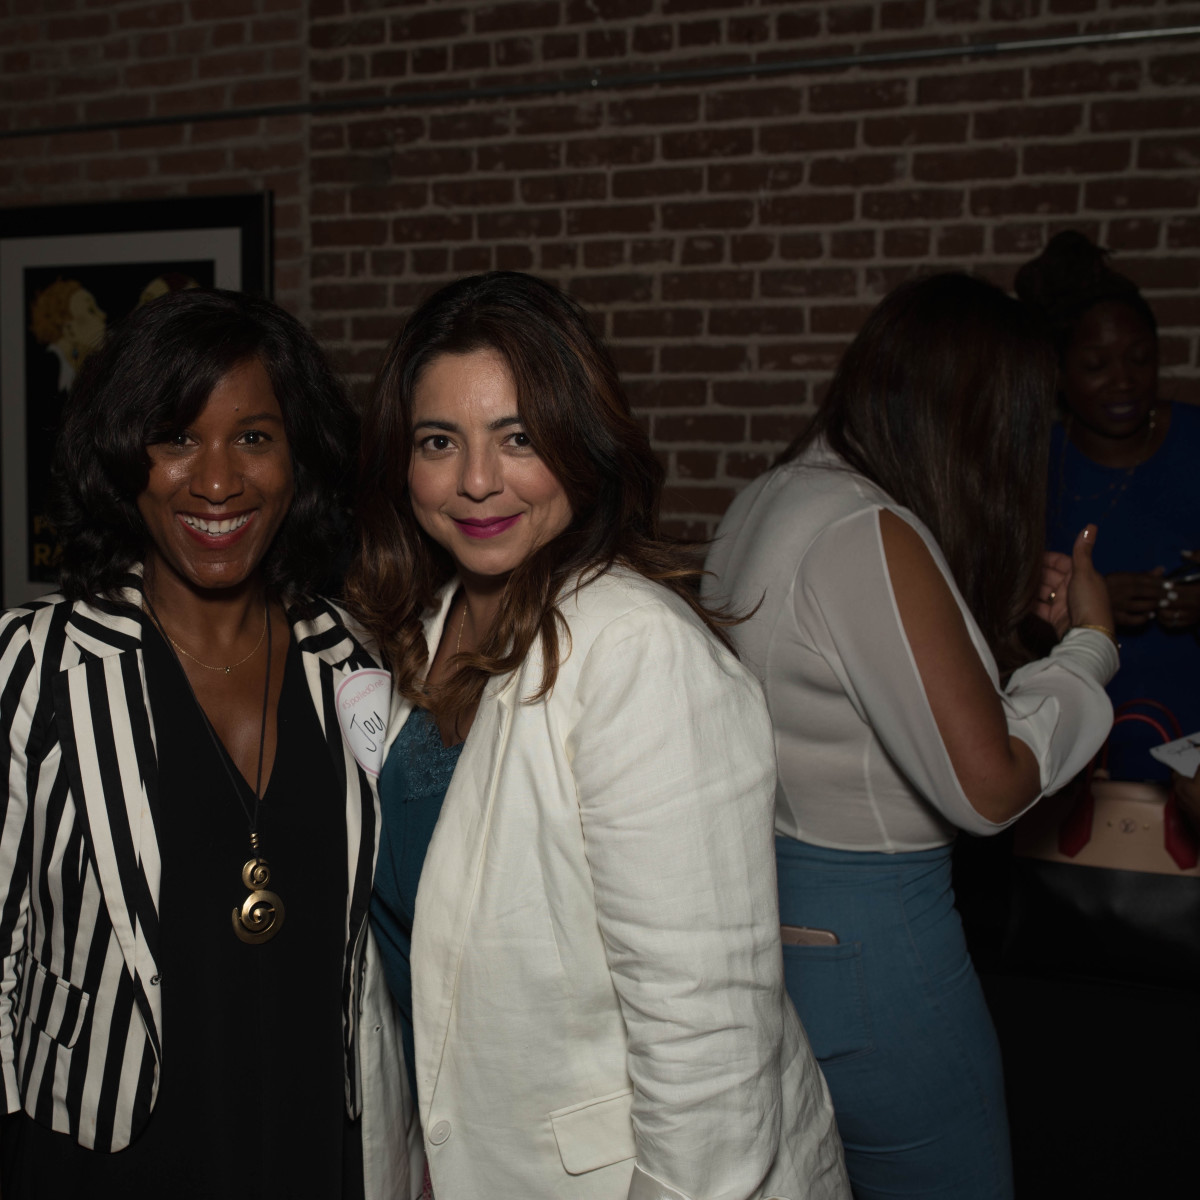 Joy Sewing, Lisa Valdez at Spoiled Latina Day event